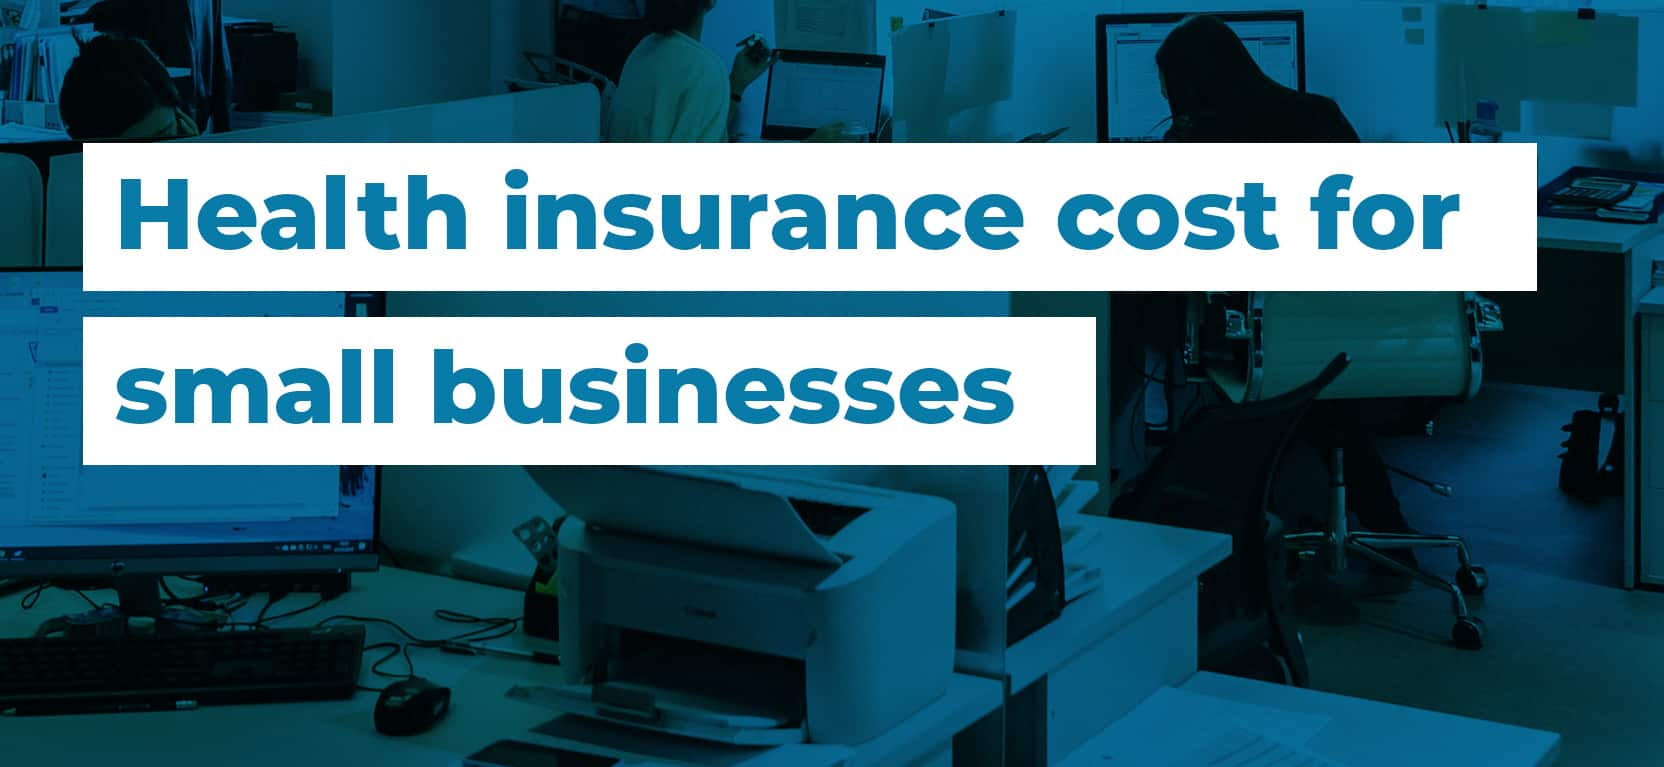 49 Health insurance cost for small businesses3